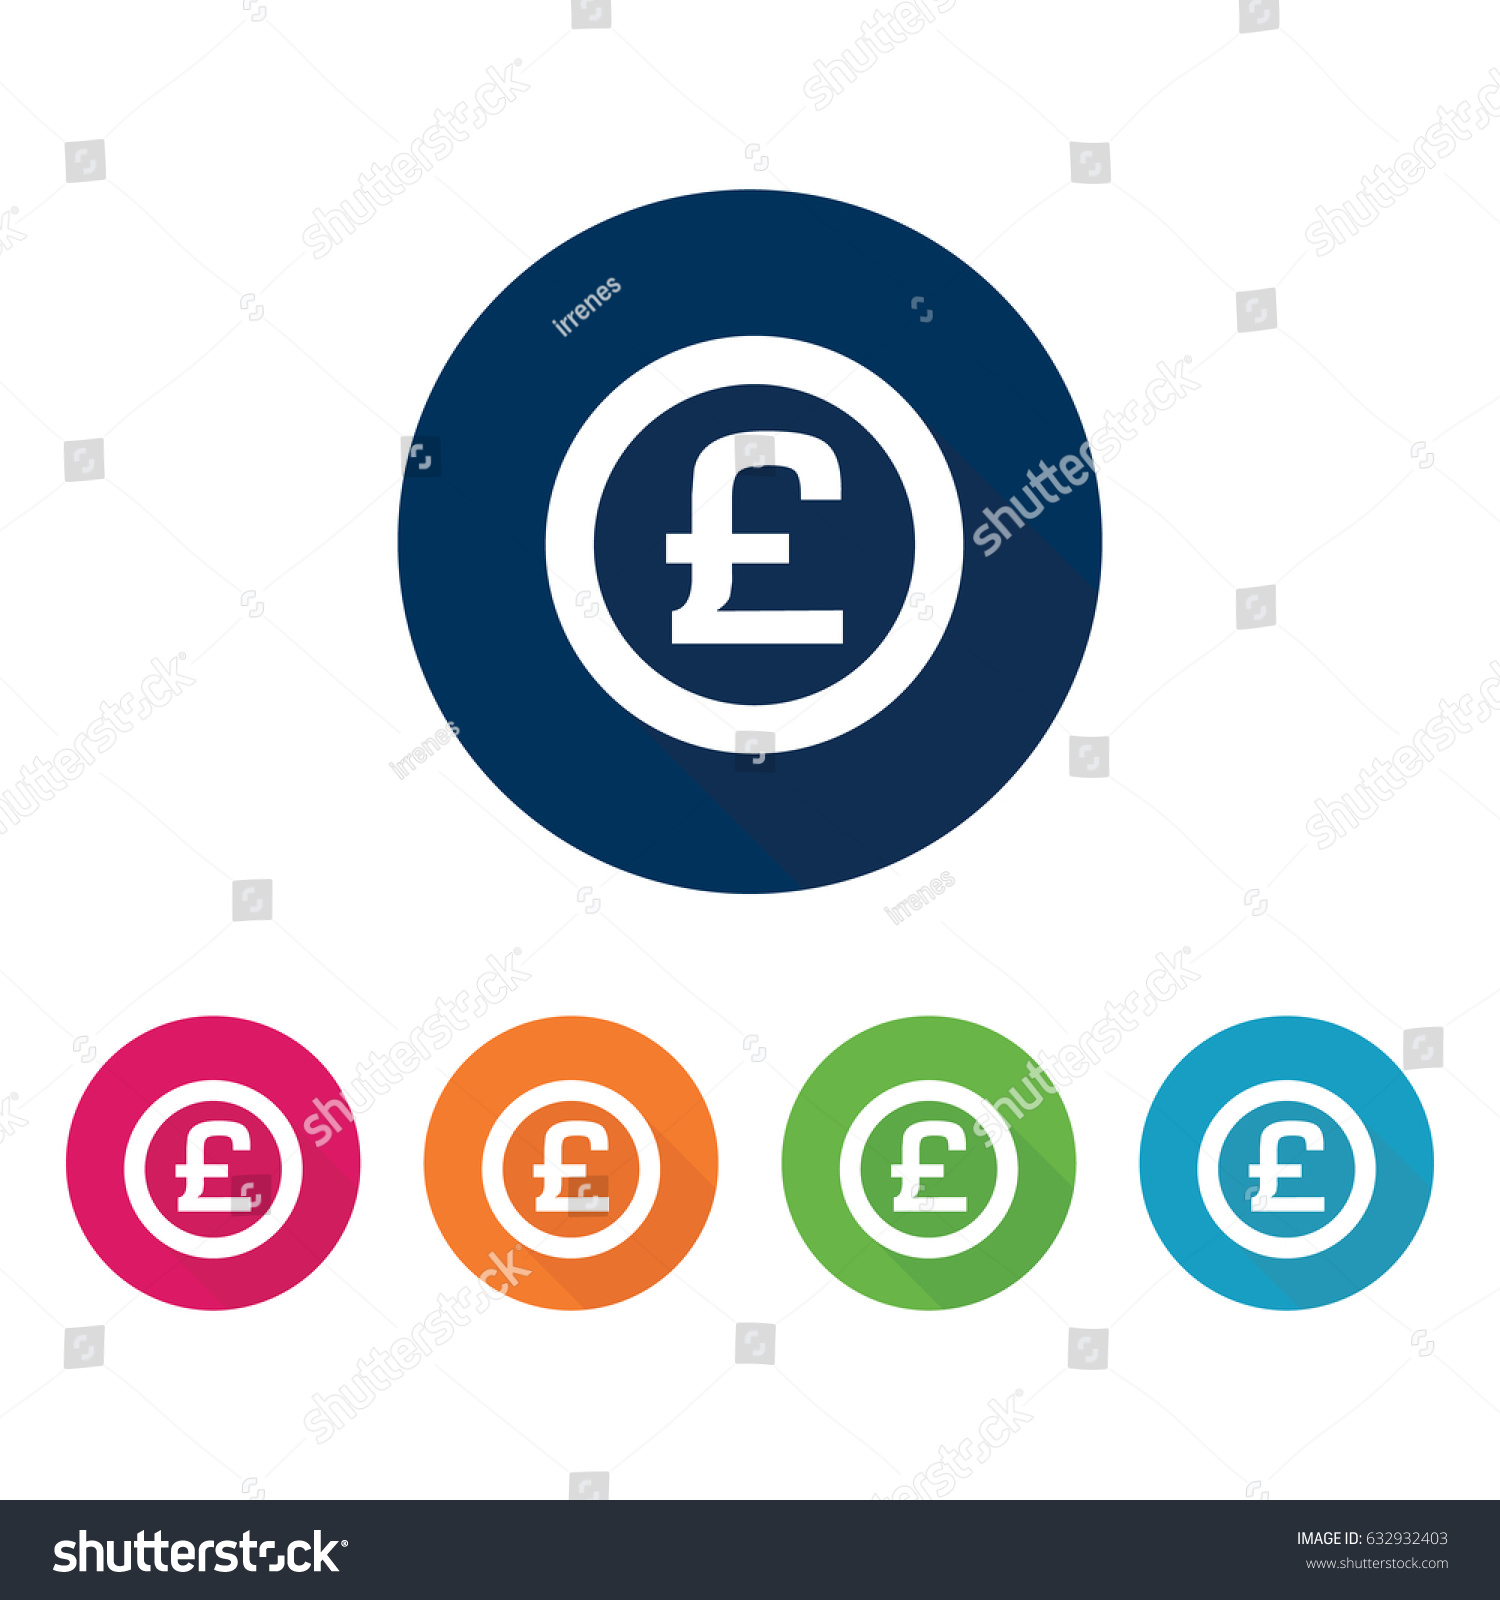 British pound sterling symbol stock vector 632932403 shutterstock british pound sterling symbol biocorpaavc Gallery